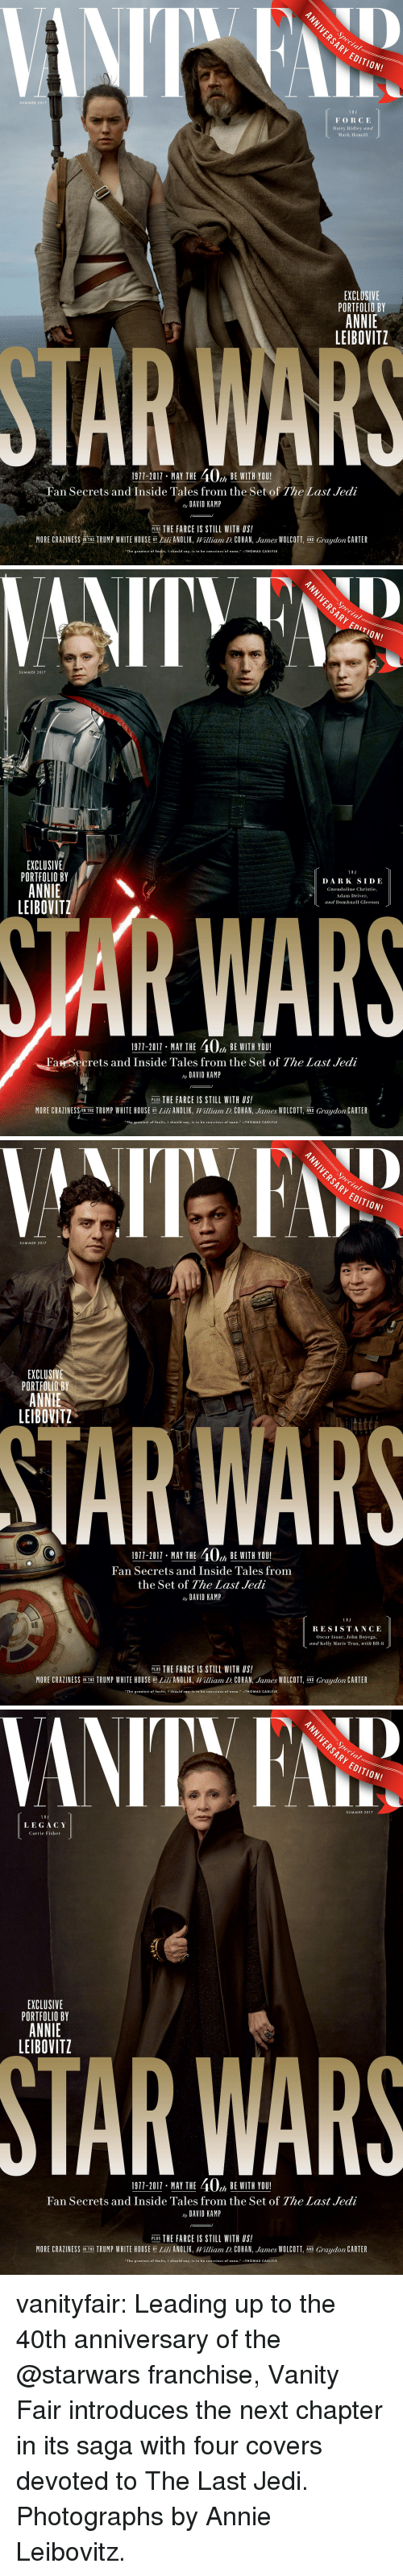 "vanity fair: ARY  EDITION!  SUMMER 2017  THE  FORCE  Daisy Ridley and  Mark Hamill  EXCLUSIVE  PORTFOLIO BY  ANNIE  LEIBOVITZ  1911-2011, MAY THE 40% BEWITH YOU!  Fan Secrets and Inside Tales from the Set of The Last Jedi  ay DAVID KAMP  PLUS THE FARCE IS STILL WITH US!  MORE CRAZINESS NTHE TRUMP WHITE HOUSE ili ANOLIK, William D. COHAN, James WOLCOTT, AND Graydon CARTER  The greatest of faults, I should say, is to be conscious of none.THOMAS CARLYLE   SUMMER 2017  EXCLUSIVE  PORTFOLIO BY  ANNIE  LEIBOVITZ  DARK SIDE  Gwendoline Christie,  Adam Driver  and Domhnall Gleeson  WAR  1911-2017 MAY THE 40, BE WITH YOU!  Fan Secrets and Inside Tales from the Set of The Last Jedi  ay DAVID KAMP  PLUS THE FARCE IS STILL WITH US!  MORE CRAZINESS/IN THE TRUMP WHITE HOUSE B Lili ANOLIK, William D. COHAN, James WOLCOTT, AND Graydon CARTER  ""The greatest of faults, I should say, is to be conscious of none.""-THOMAS CARLYLE   ARY  EDITION!  SUMMER 2017  EXCLUSI  PORTFOLIO BY  ANNIE  LEIBOVITZ  TAR WARS  1911-2011 . MAY THE 40% BE WITH YOU!  Fan Secrets and Inside Tales from  the Set of The Last Jedi  ay DAVID KAMP  1 HE  RESISTANCE  Oscar Isaac, John Boyega,  and Kelly Marie Tran, with BB-8  PLUS THE FARCE IS STILL WITH US!  MORE CRAZINESS İN THE TRUMP WHITE HOUSE BY Lil ANOLIK, William D. COHAN James WOLCOTT AND Graydon CARTER  The greatest of faults, I should say, is to be conscious of none.""-THOMAS CARLYLE   Decial  ARY EDITION!  SUMMER 2017  T H E  LEGACY  Carrie Fisher  EXCLUSIVE  PORTFOLIO BY  ANNIE  LEIBOVITZ  STAR WARS  1971-2011 MAY THE 40, BE WITH YOU!  Fan Secrets and Inside Tales from the Set of The Last Jedi  ay DAVID KAMIP  PLIE THE FARCE IS STILL WITH US!  ER  MORE CRAZINESS NTHE TRUMP WHITE HOUSE BY Lili ANOLIK, William D. COHAN, ""lunes WOLCOTT AND Graydon CA  ""The greatest of faults, I should say, is to be conscious of e.-THOMAS CARLYLE vanityfair: Leading up to the 40th anniversary of the @starwars franchise, Vanity Fair introduces the next chapter in its saga with four covers devoted to The Last Jedi.  Photographs by Annie Leibovitz."